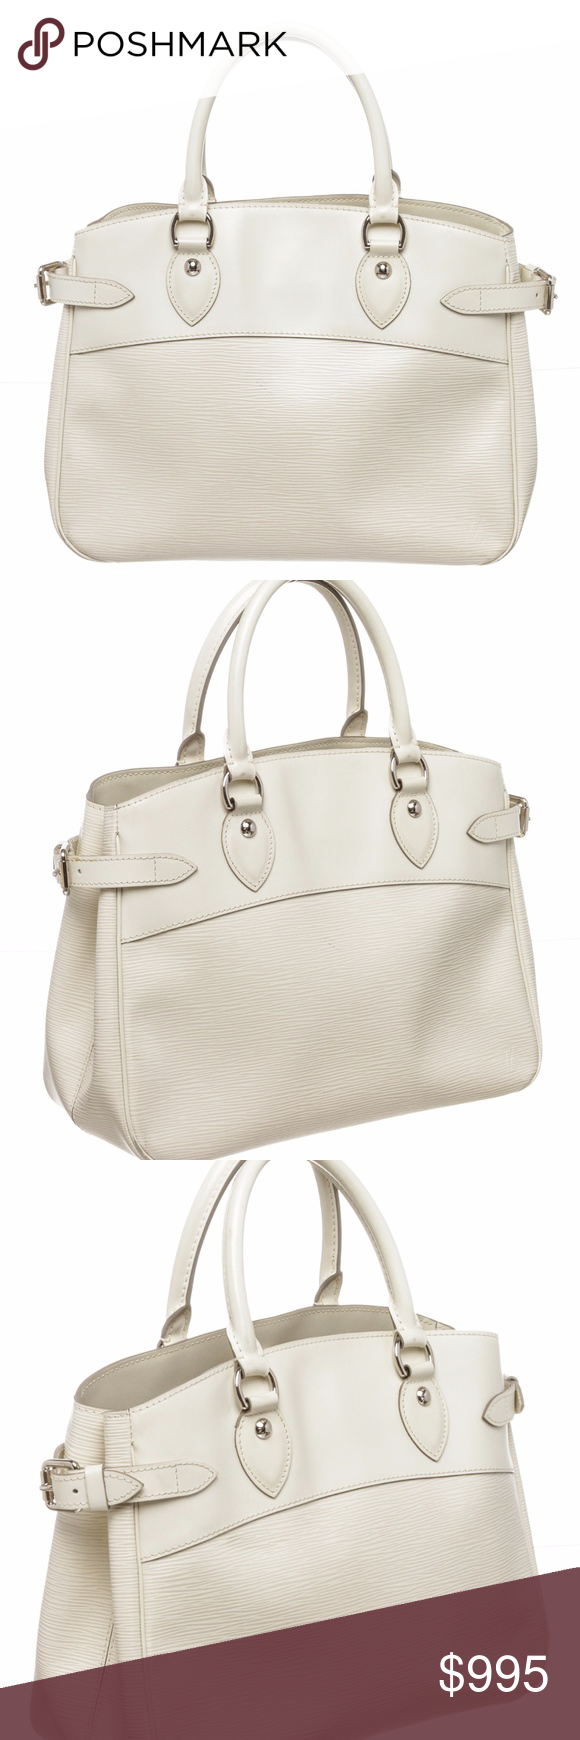 85cd57b240e Louis Vuitton White Epi Leather Passy PM Bag Overall Clasp Closure.  Interior is fabric lined